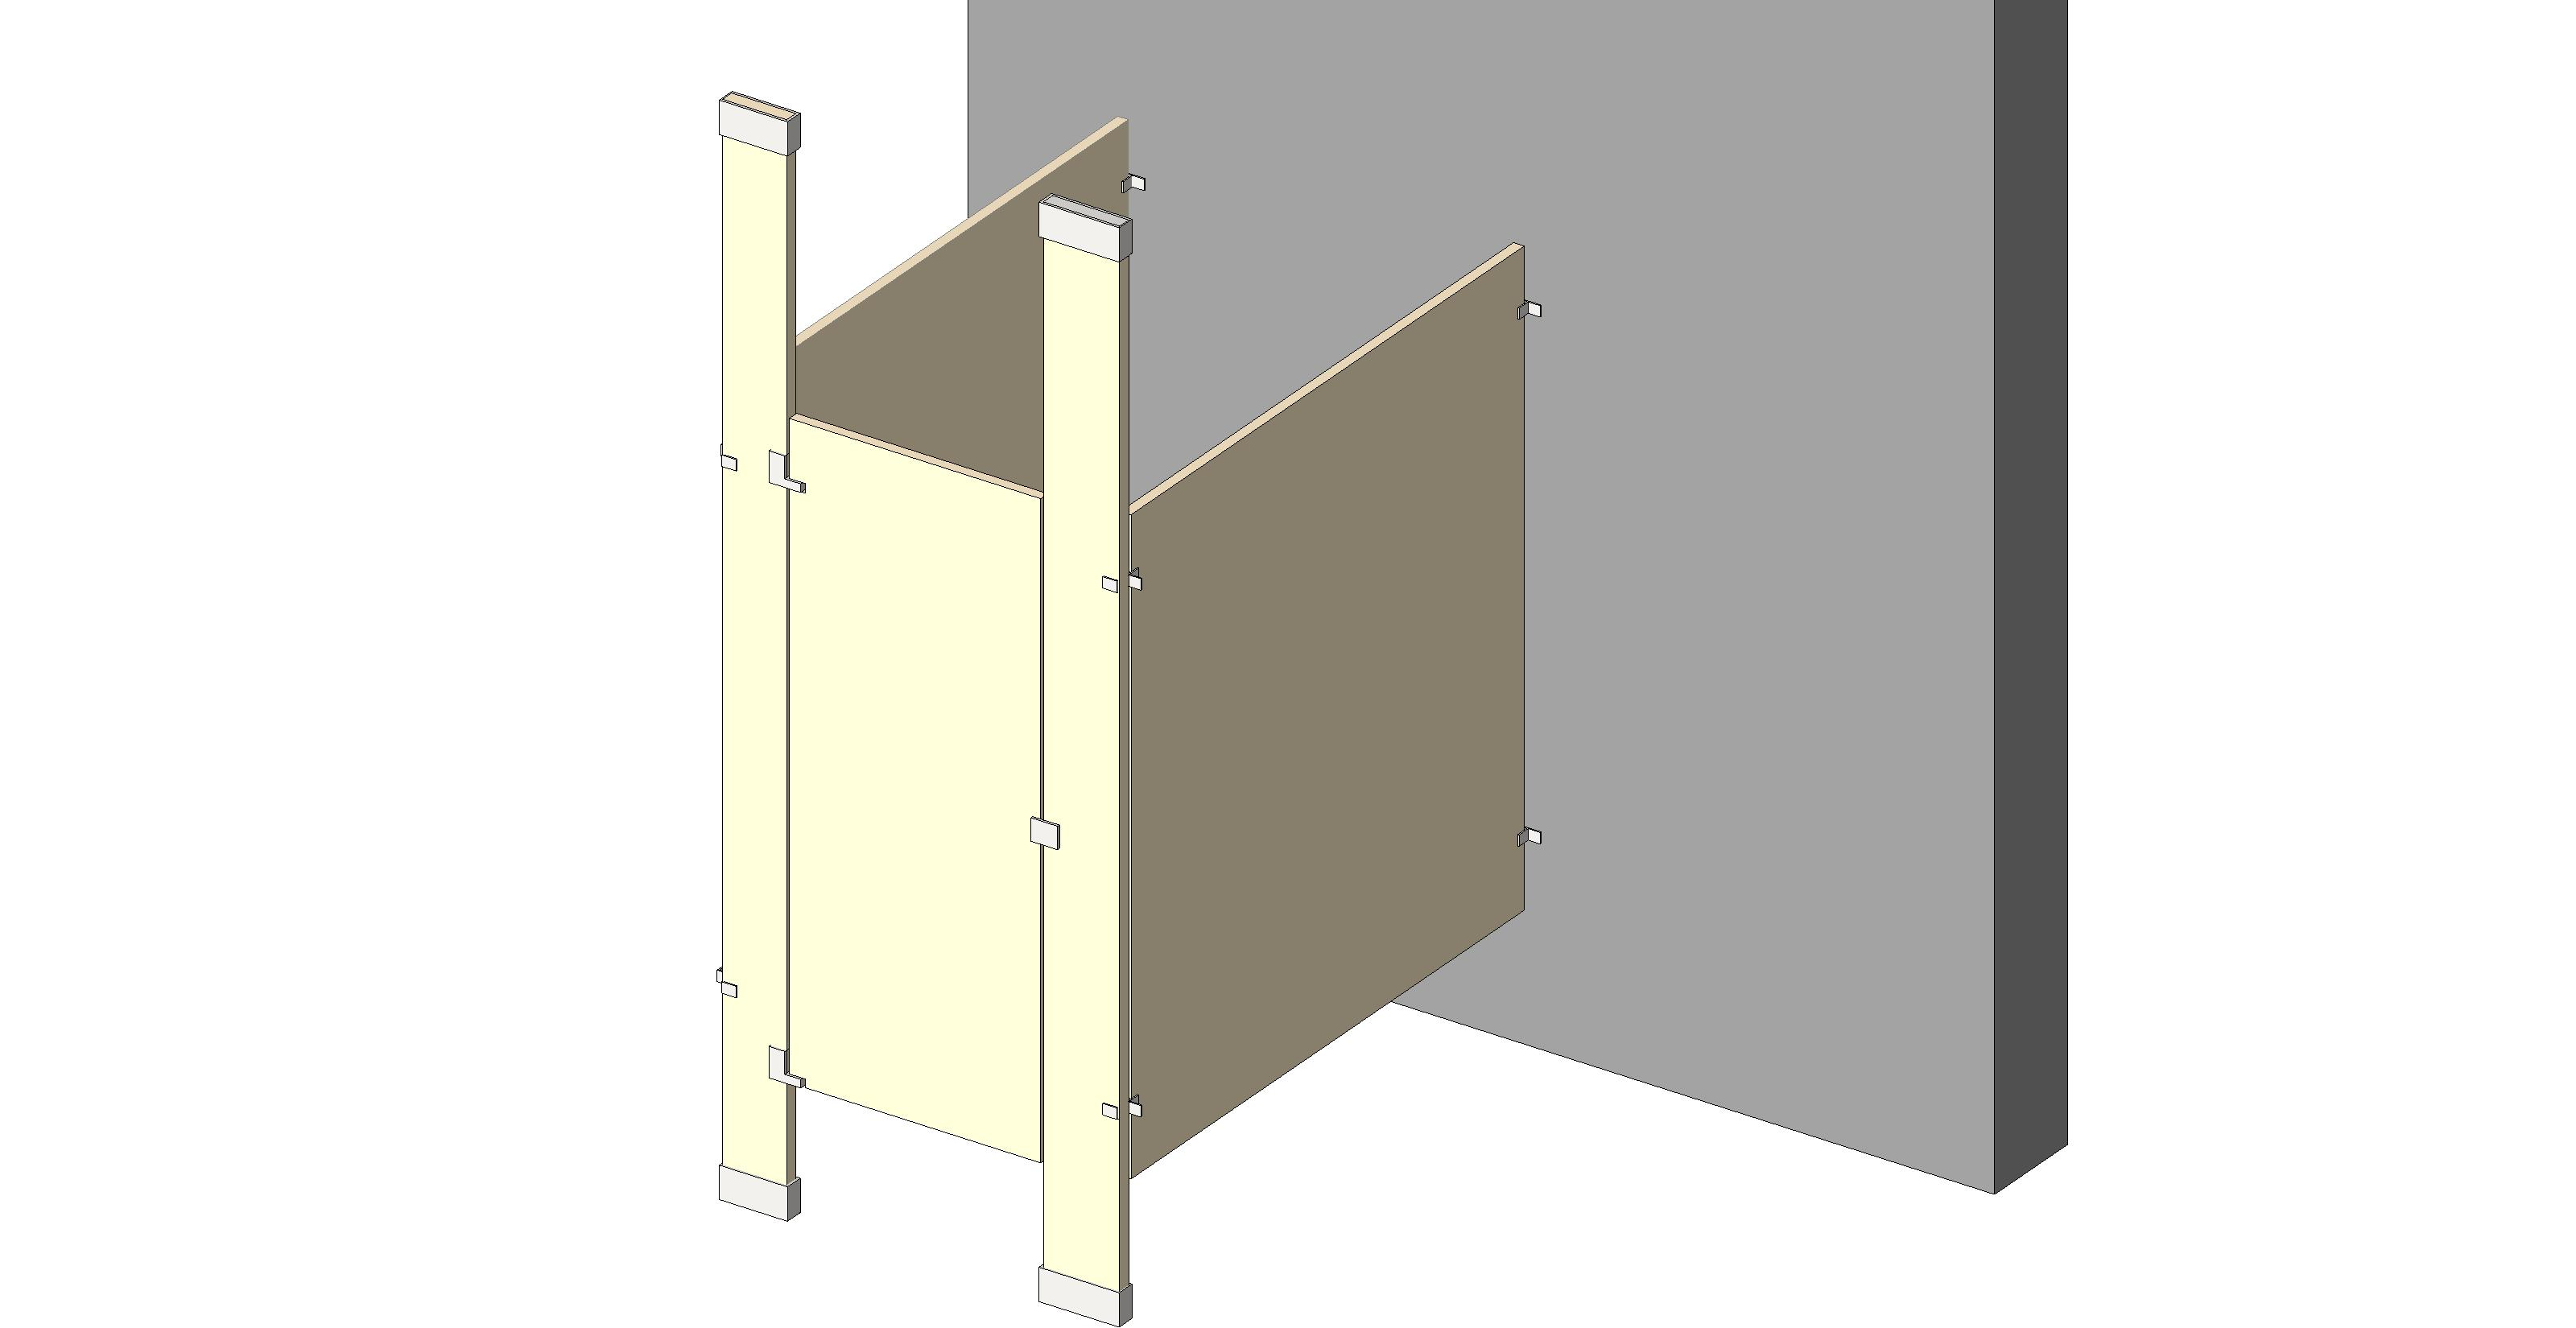 Bathroom Partitions Manufacturers bim objects / families